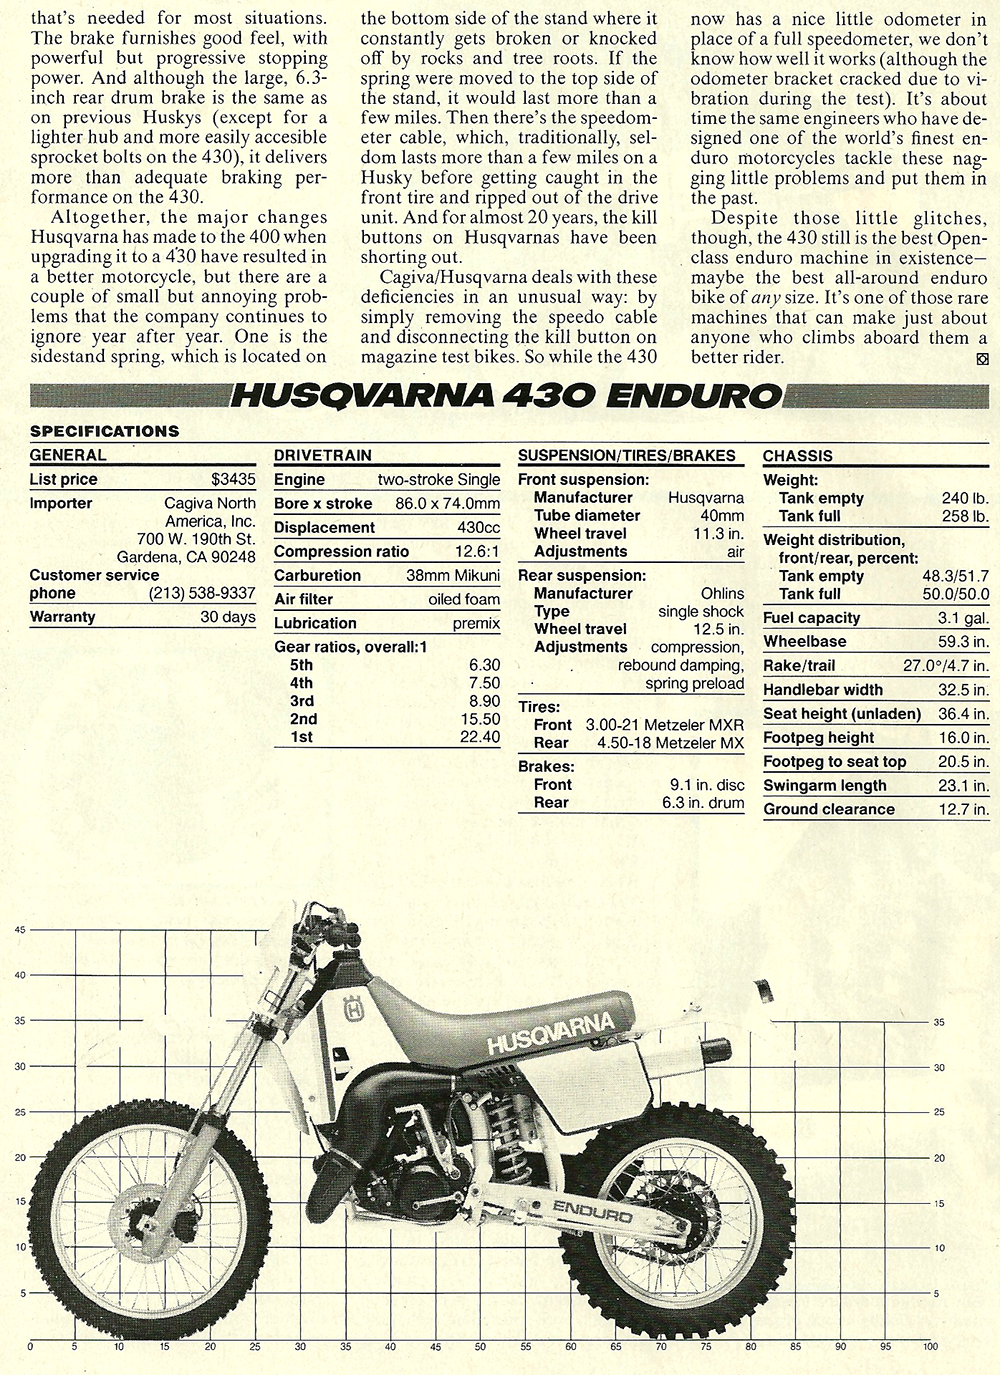 1987 Husqvarna 430 enduro road test 05.jpg